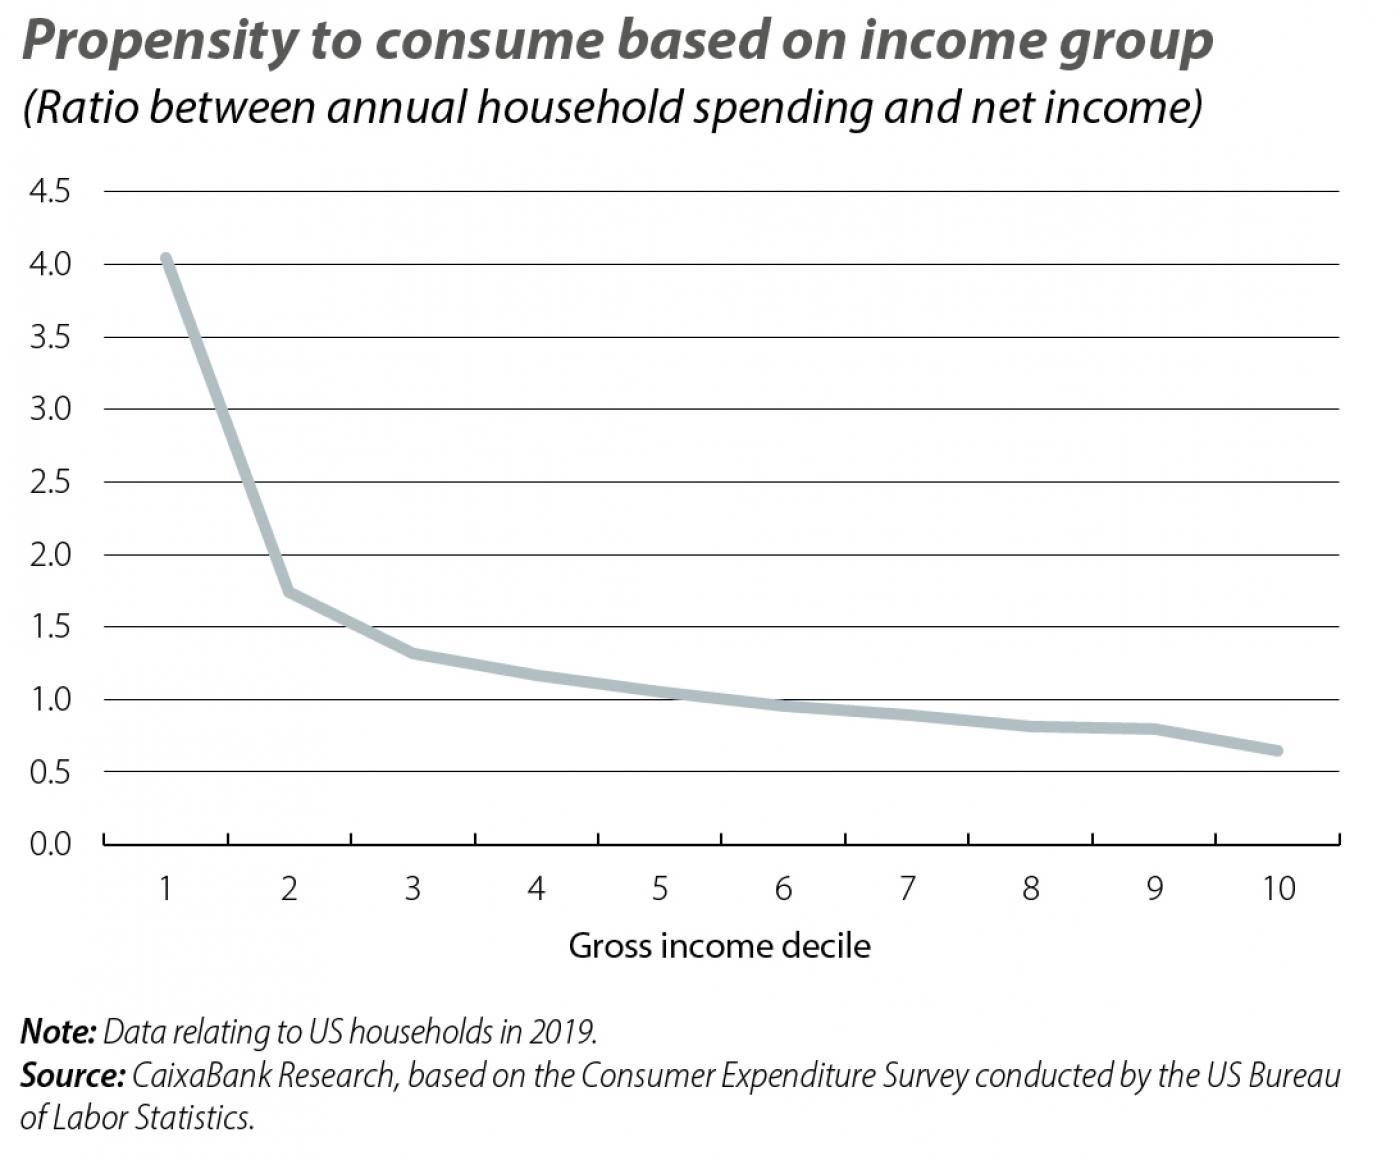 Propensity to consume based on income group